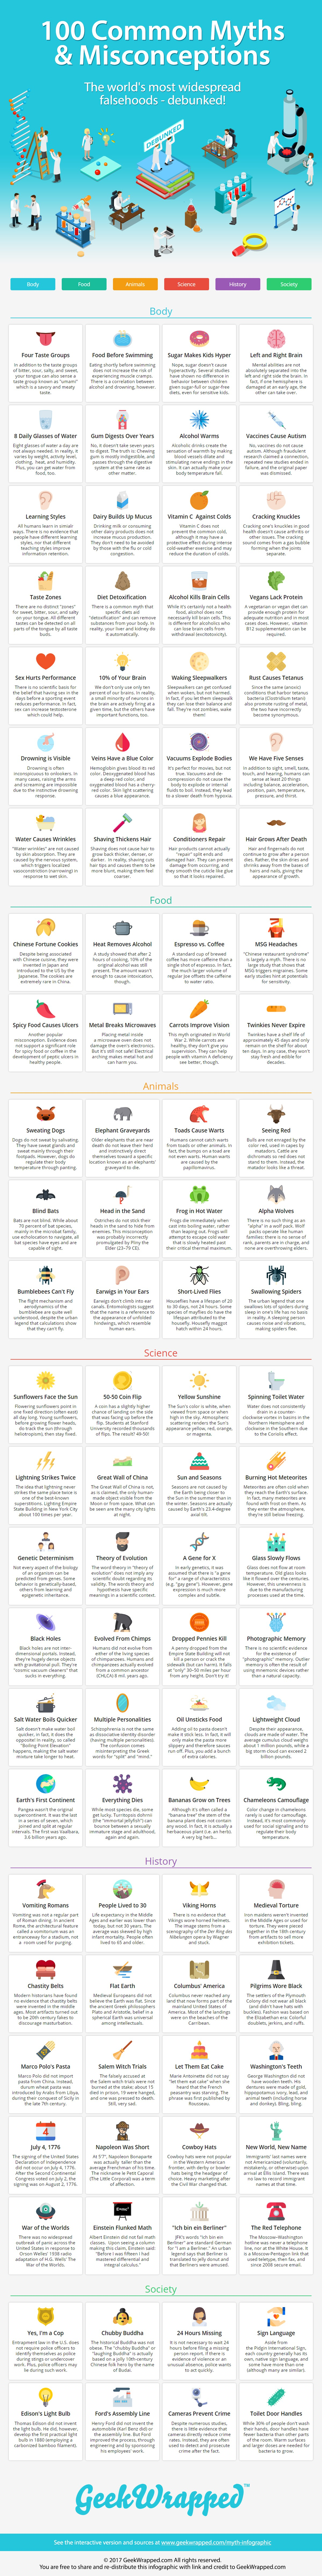 Debunking Myths & Misconceptions - Infographic